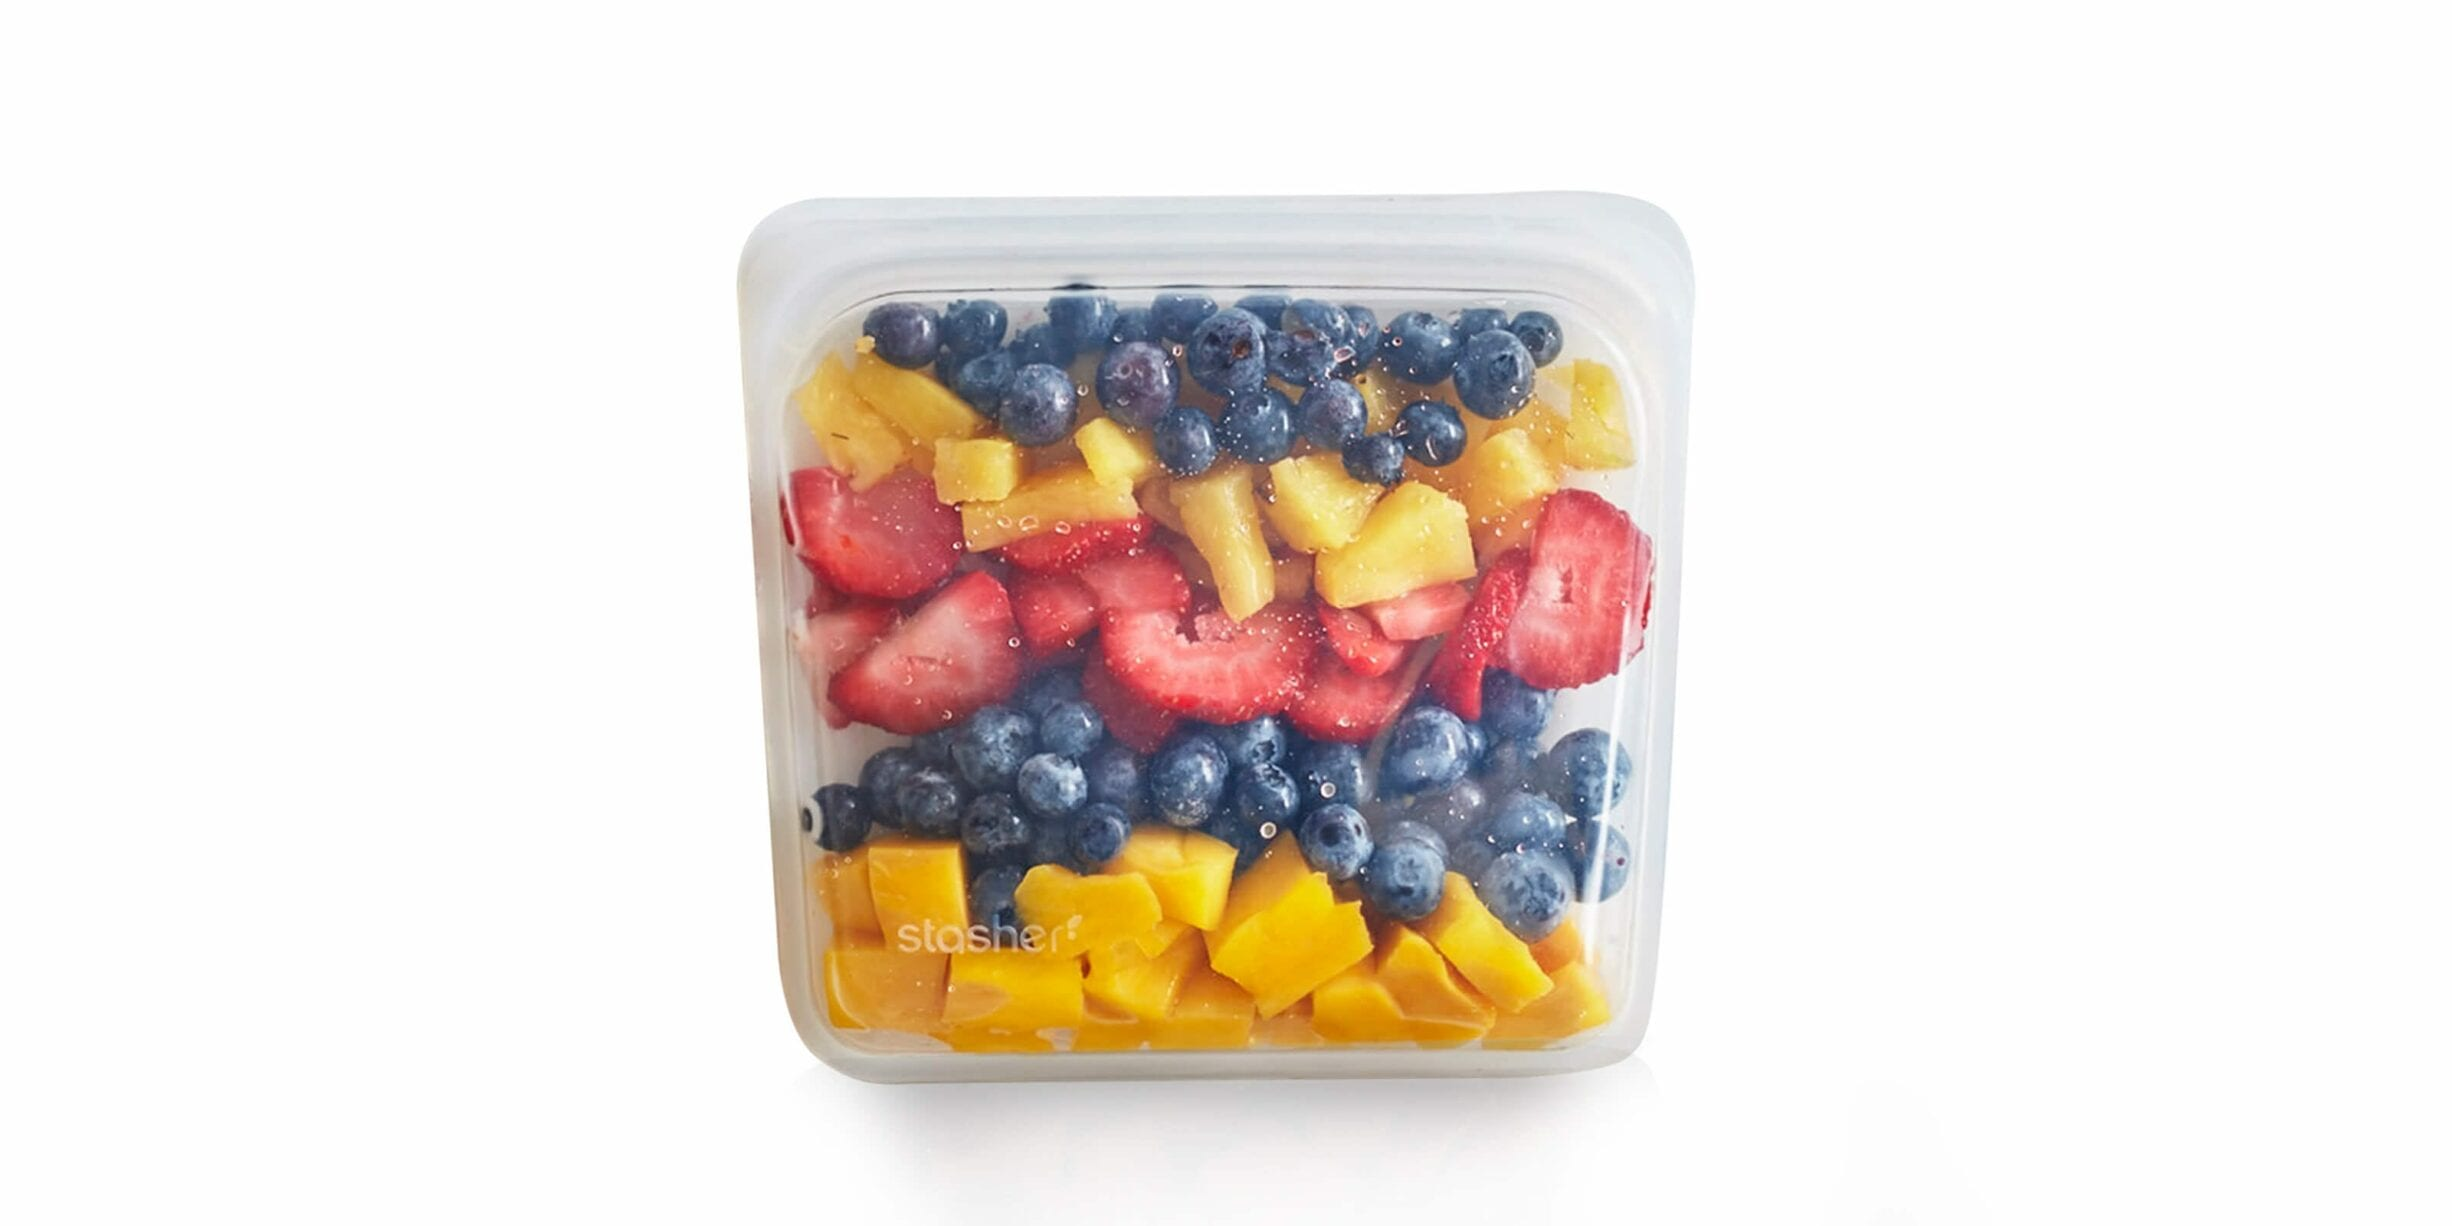 stasher bag with assorted fruit